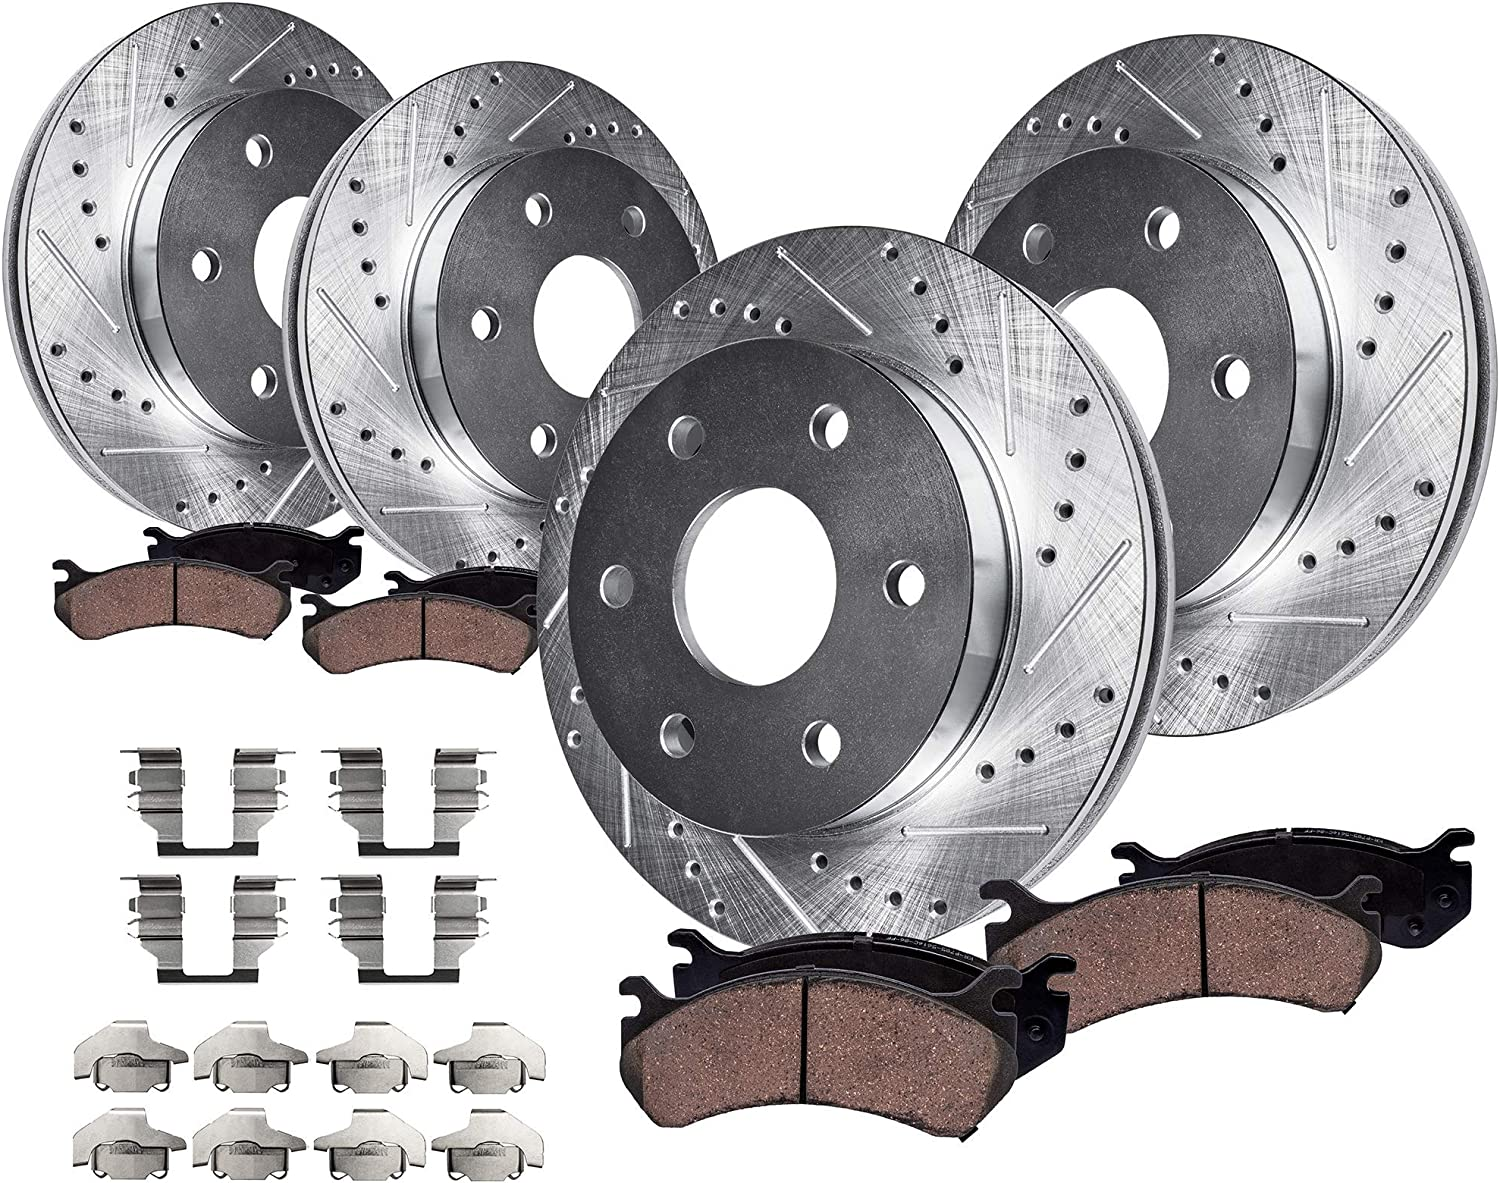 2005 2006 For GMC Yukon Rear Disc Brake Rotors and Ceramic Pads 330mm Rotor